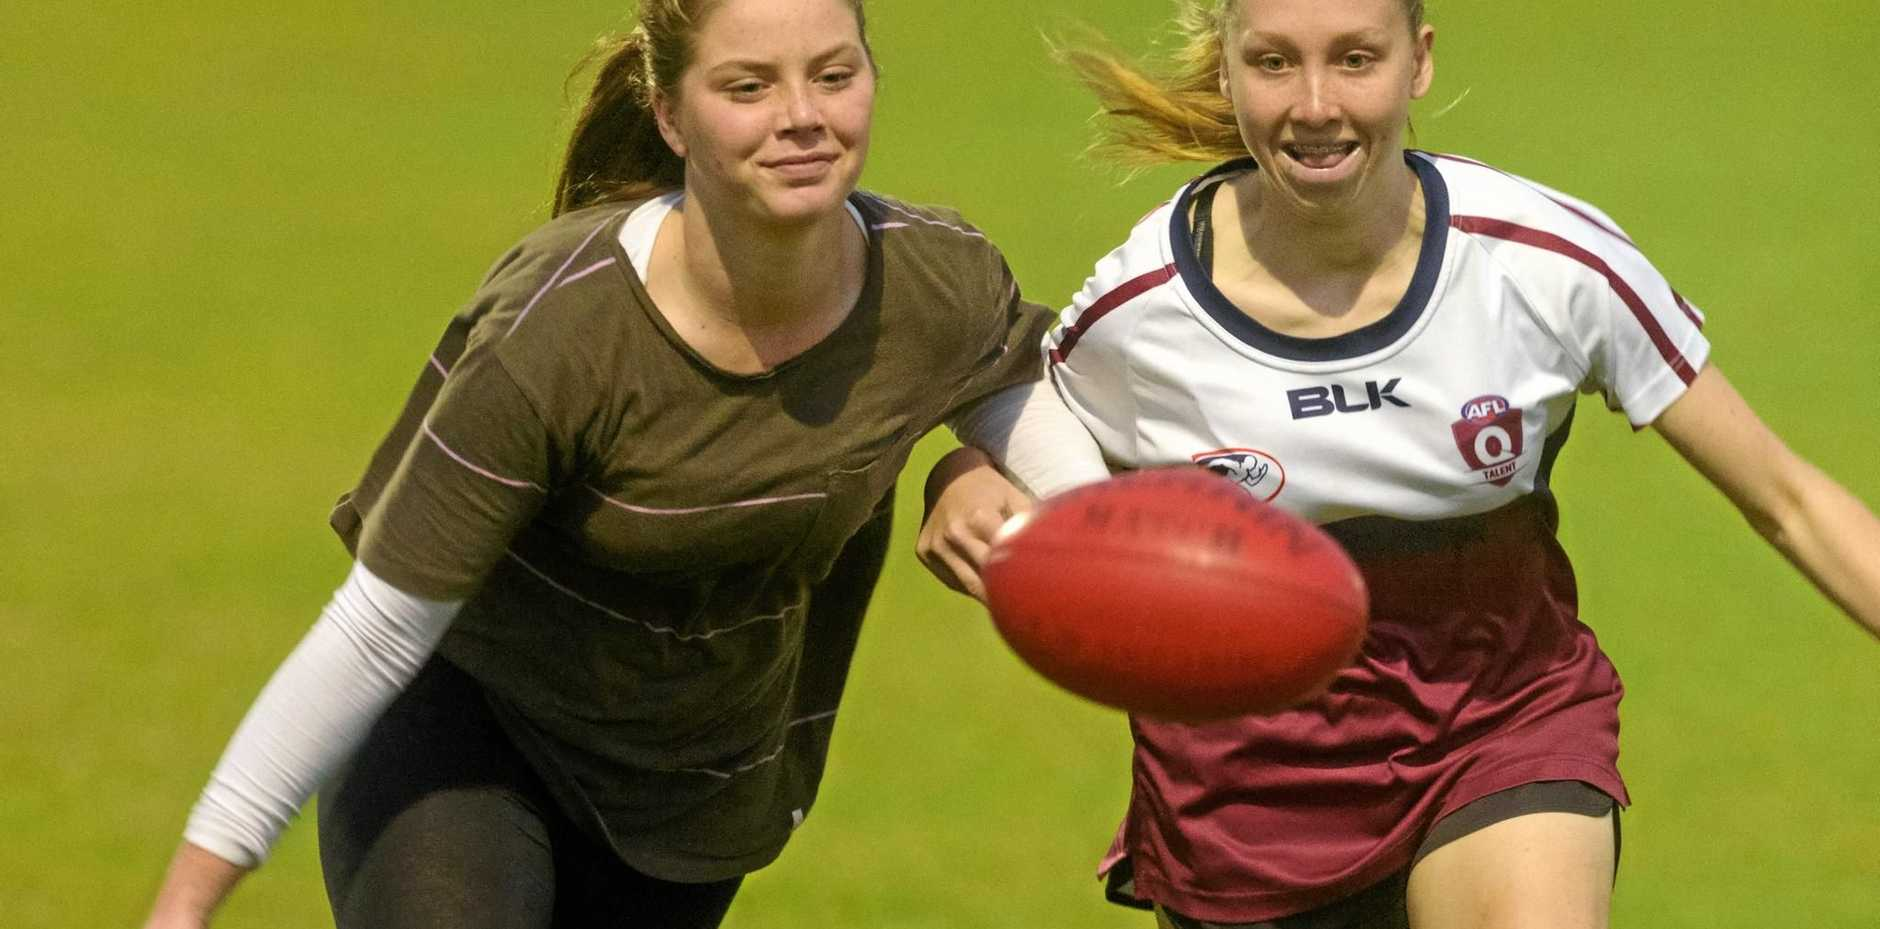 Lilly Doyle and Georgia Breward will represent NSW/ACT in the upcoming youth girls national championship.